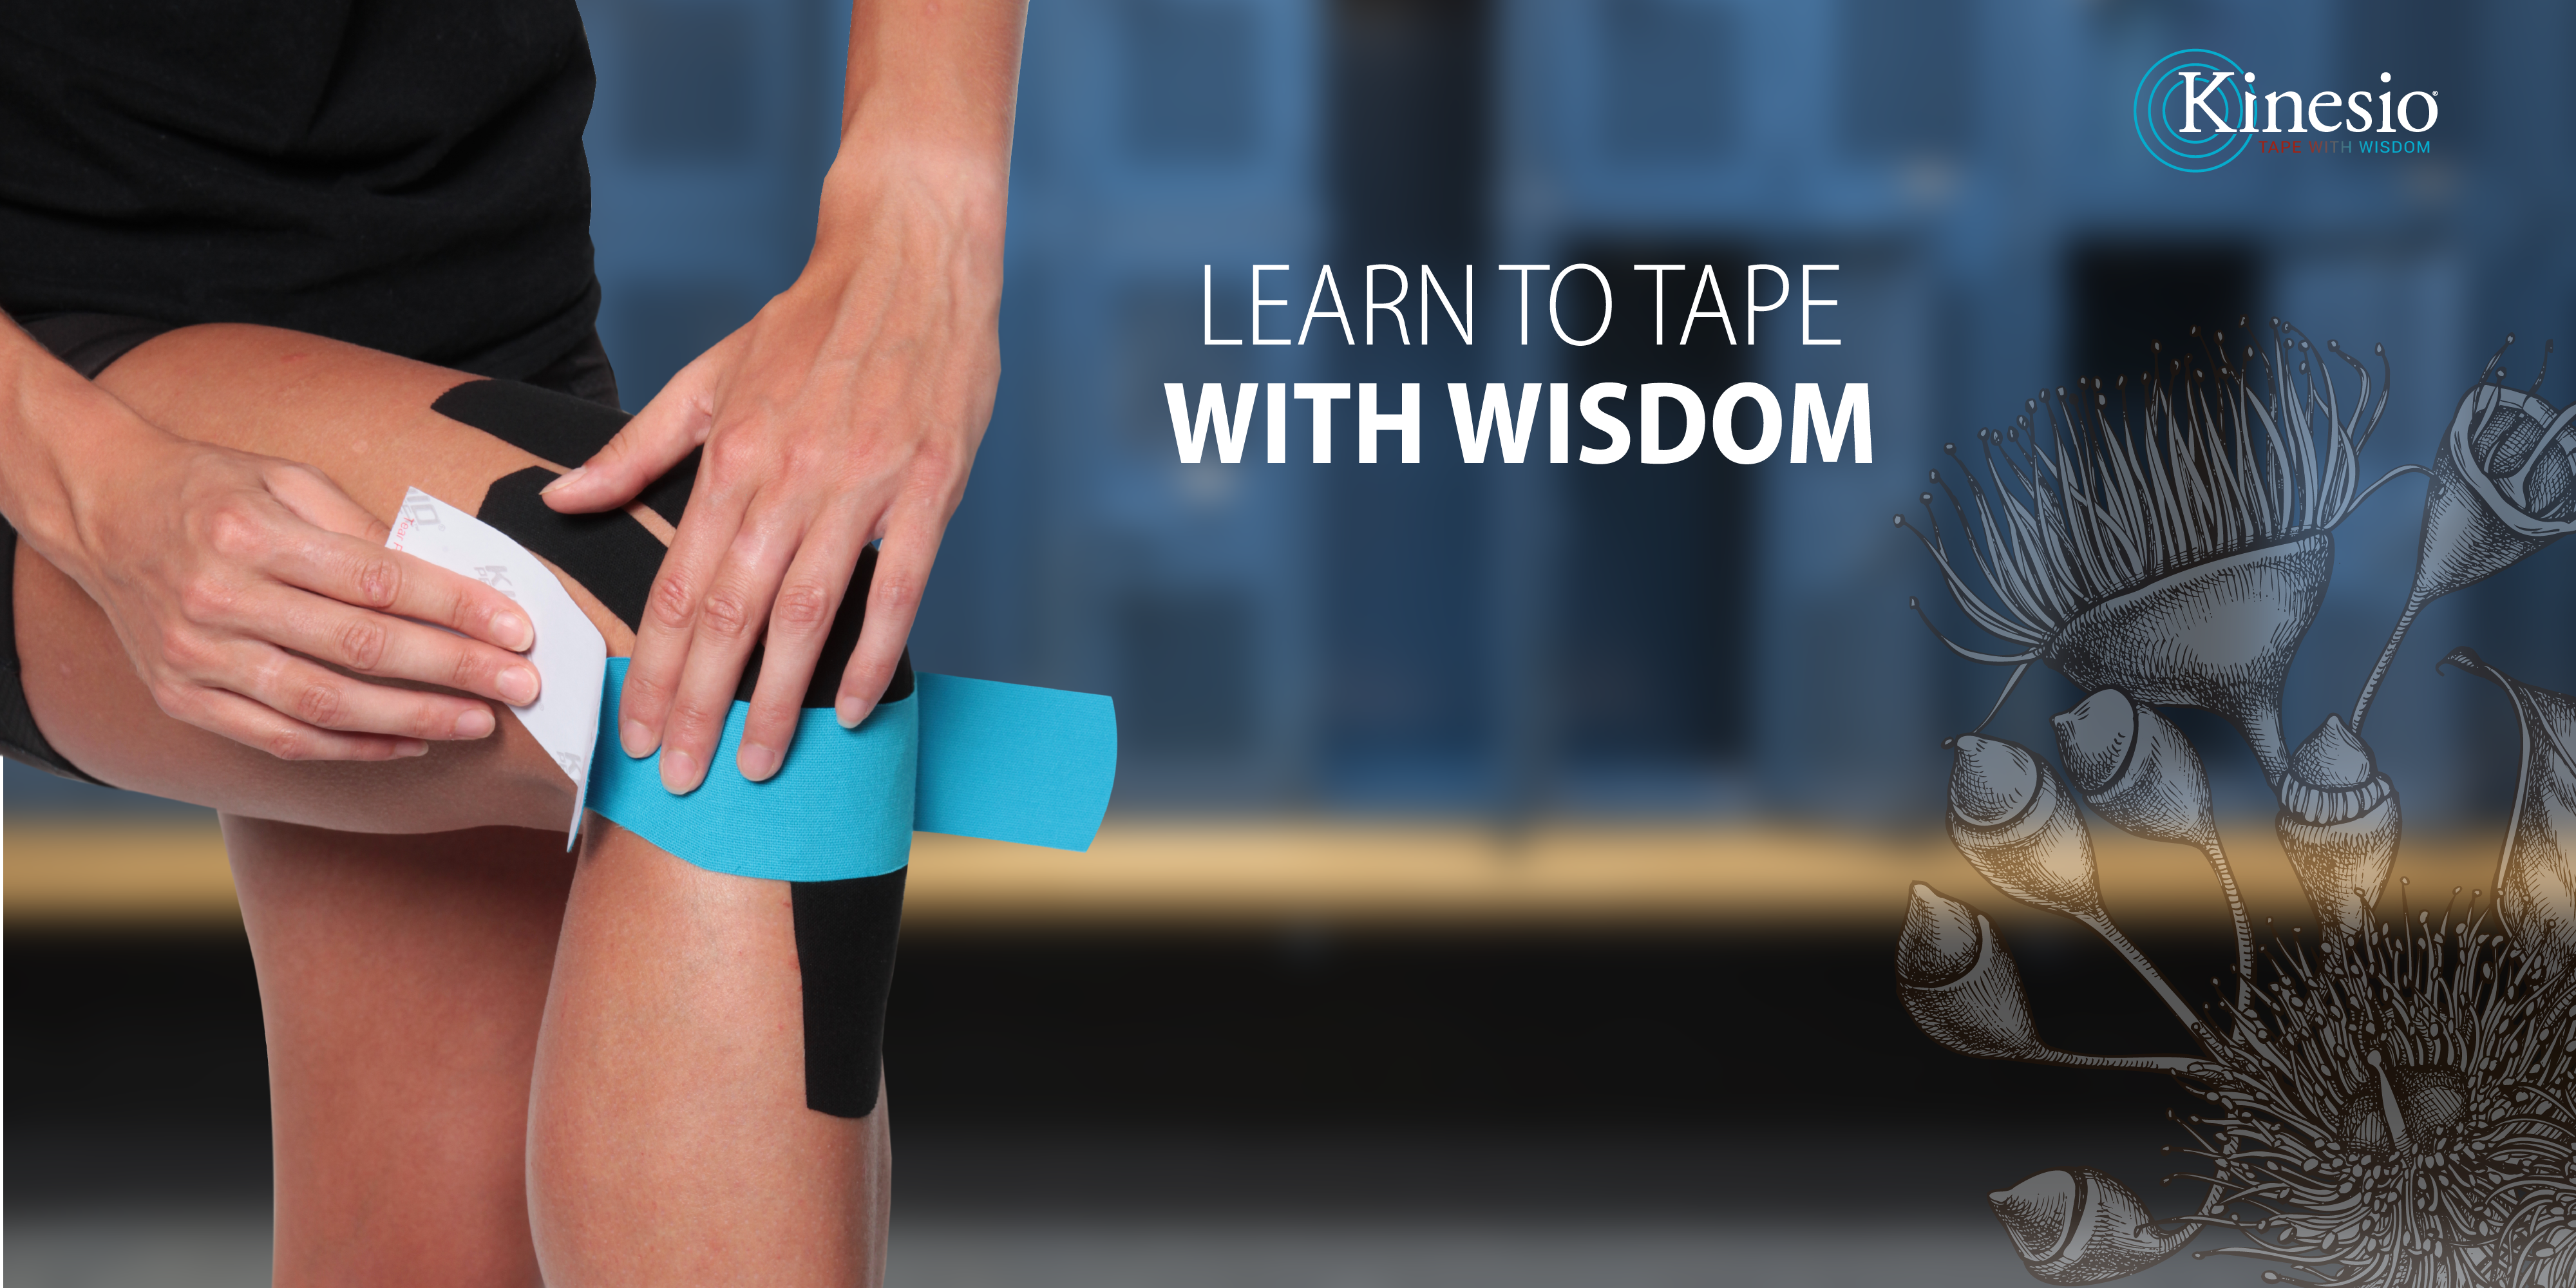 kinesio-tape-tape-it-right.png